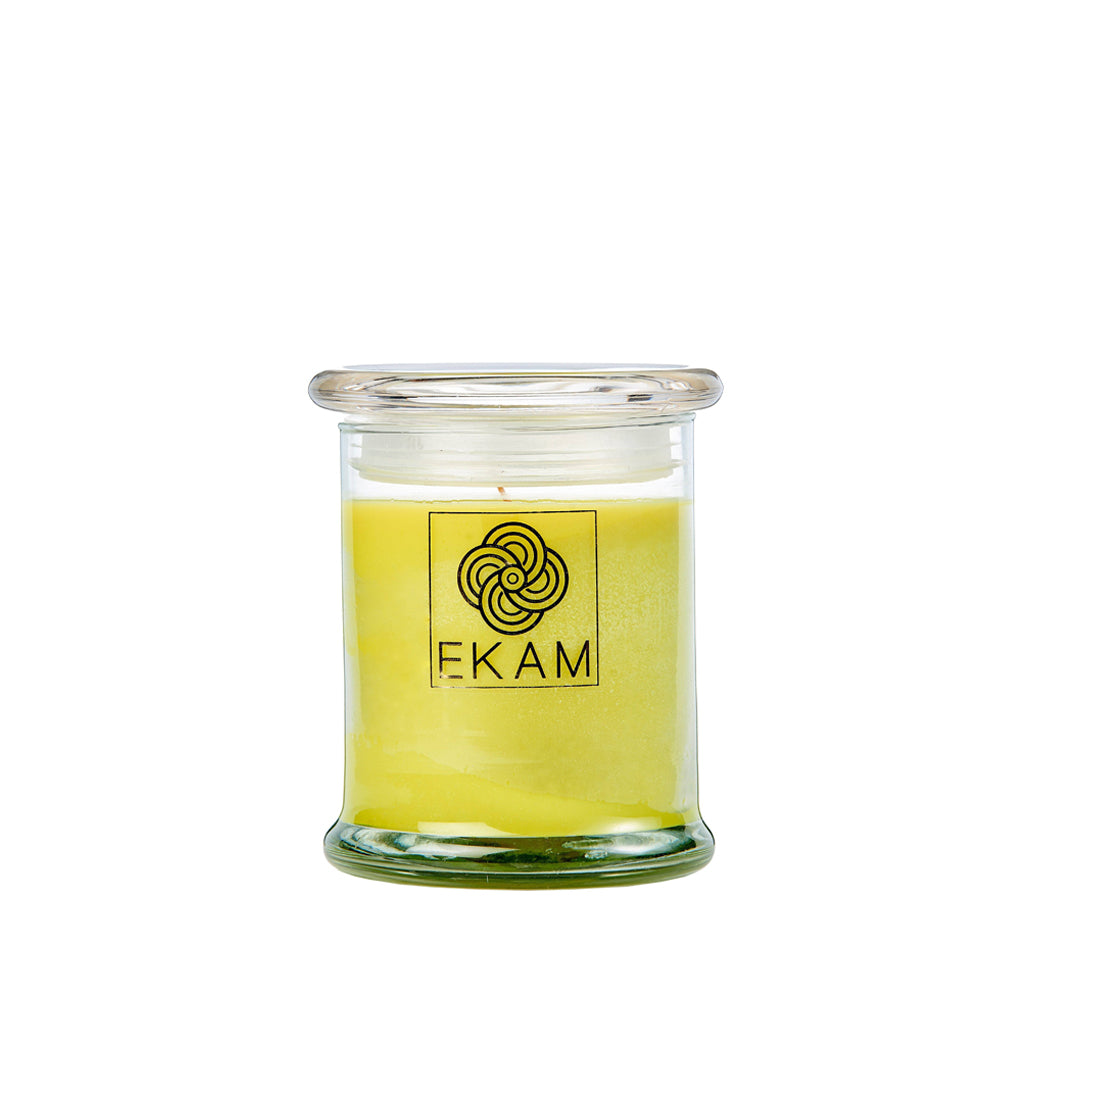 Ekam Lemongrass Scented Ring Jar Candle